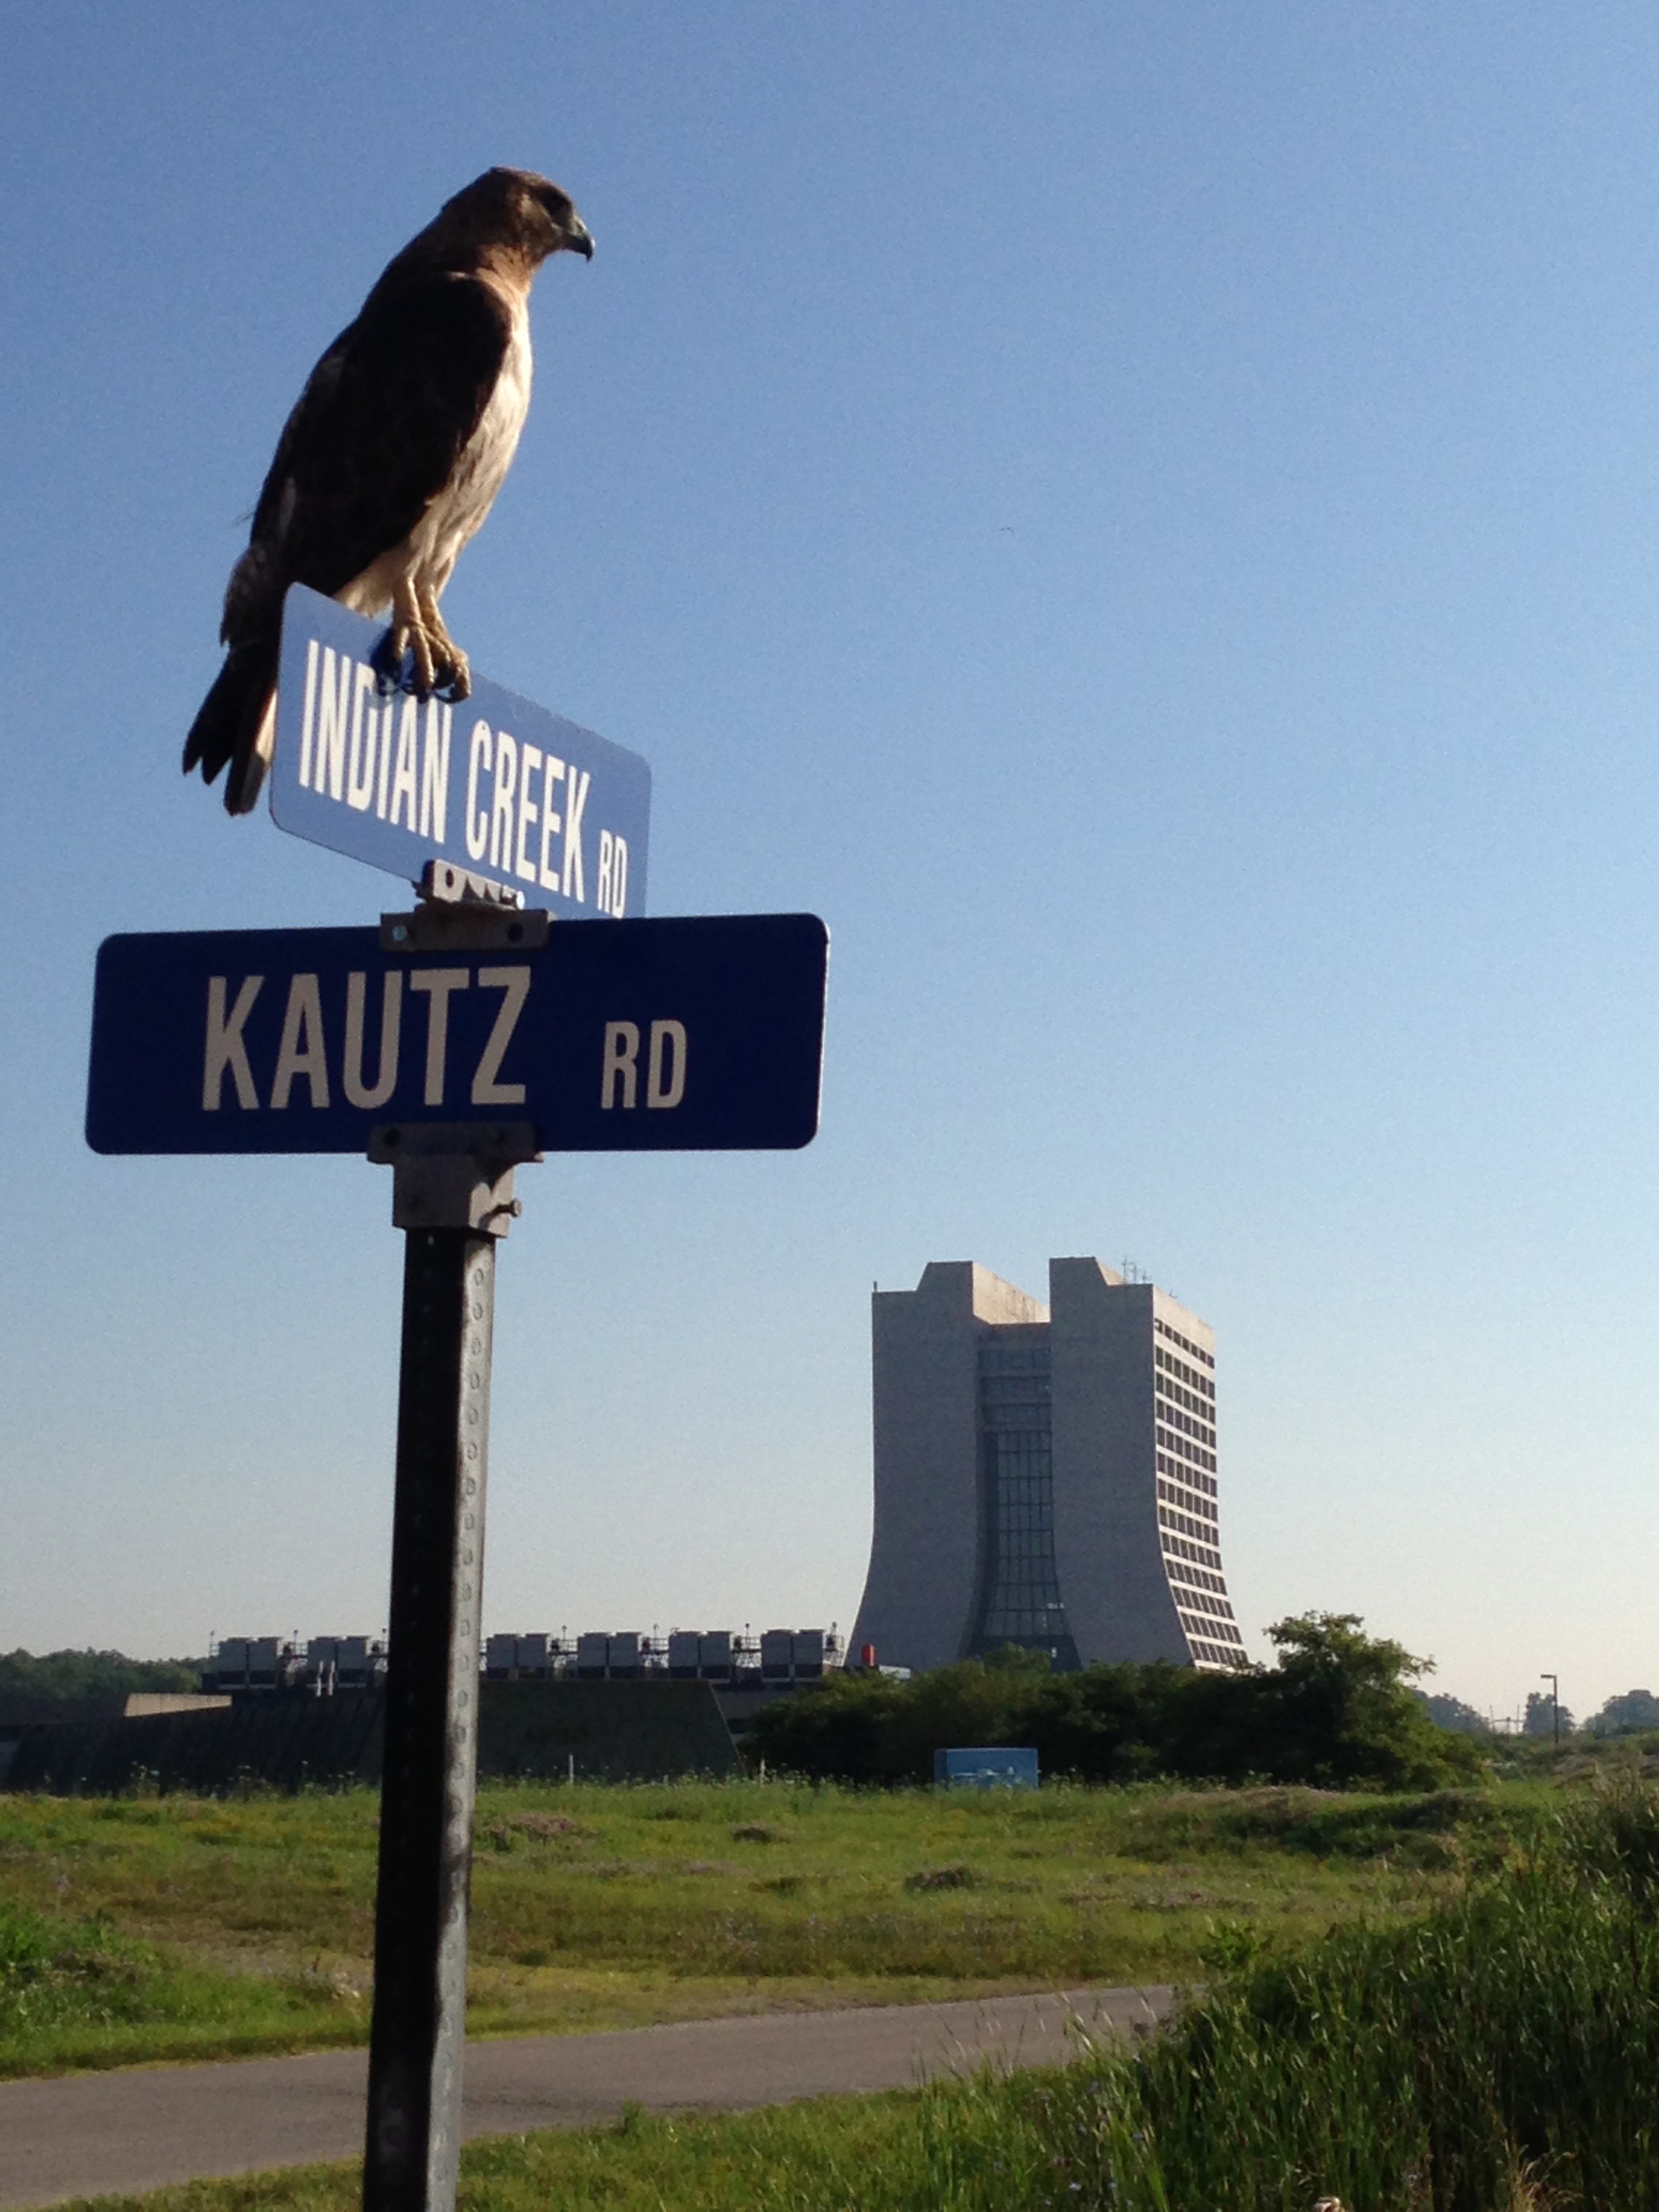 Hawks like perching on street signs. This hawk looks to Wilson Hall from the intersection of Indian Creek and Kautz roads. Photo: Ben Galan, AD